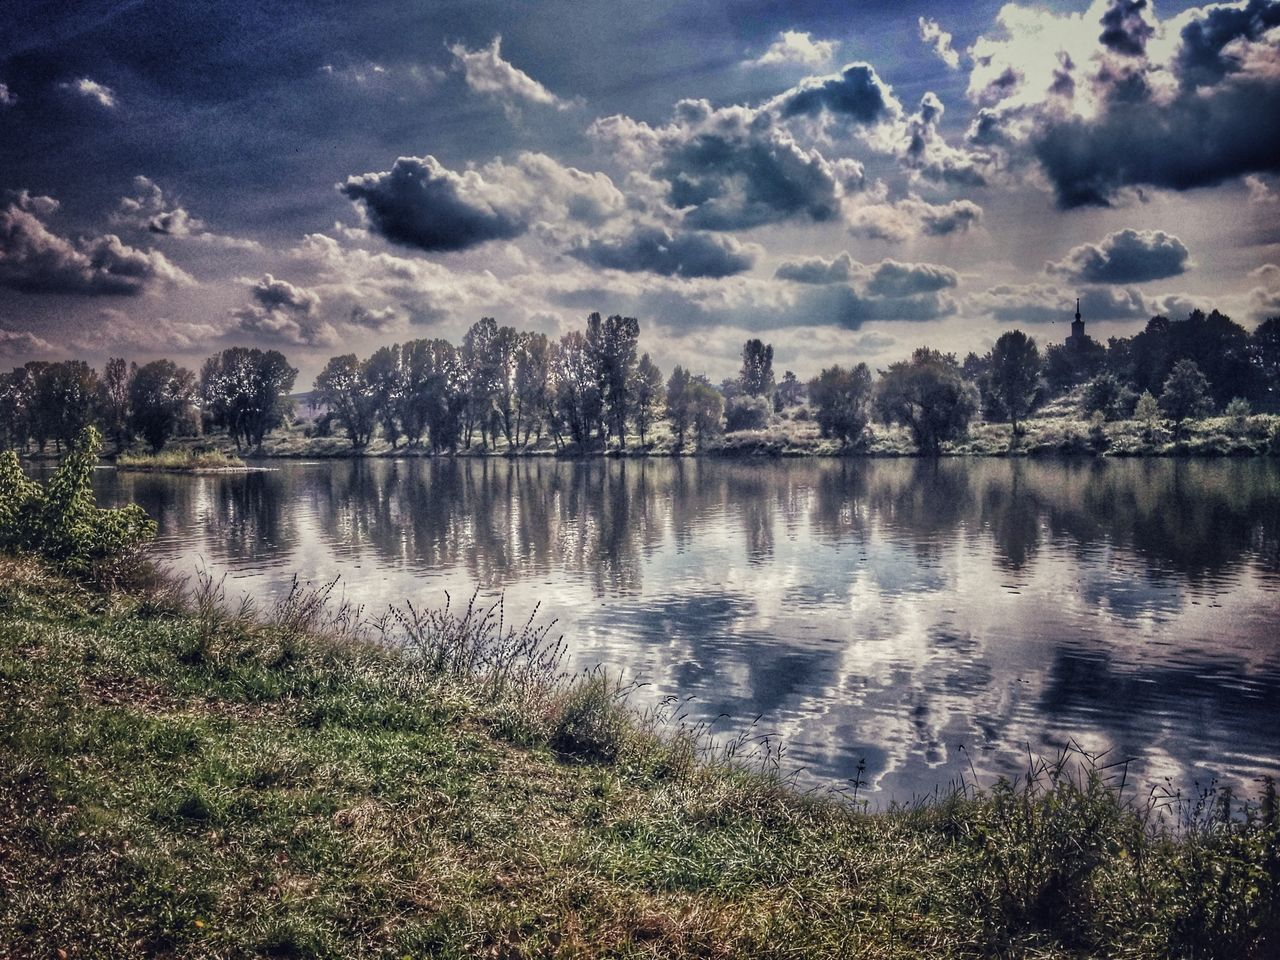 water, lake, nature, cloud - sky, reflection, tranquility, tree, scenics, no people, tranquil scene, sky, outdoors, beauty in nature, day, grass, landscape, travel destinations